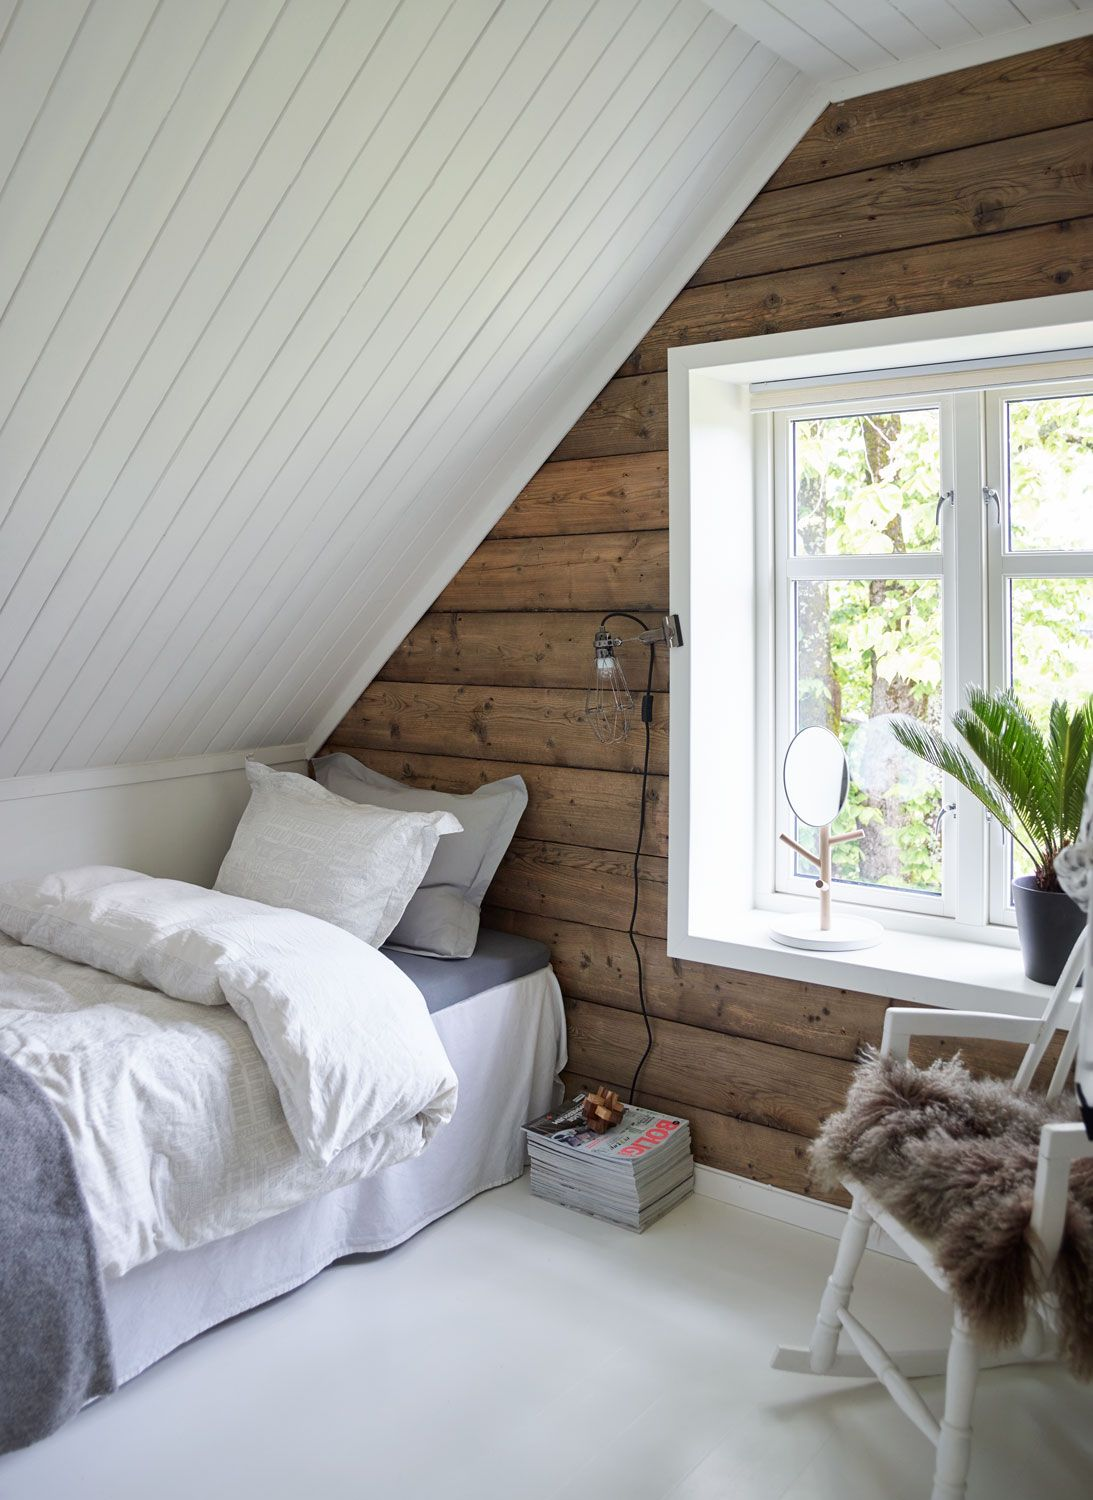 Attic bedroom design and d cor tips small attic bedrooms for Bedroom suite decorating ideas